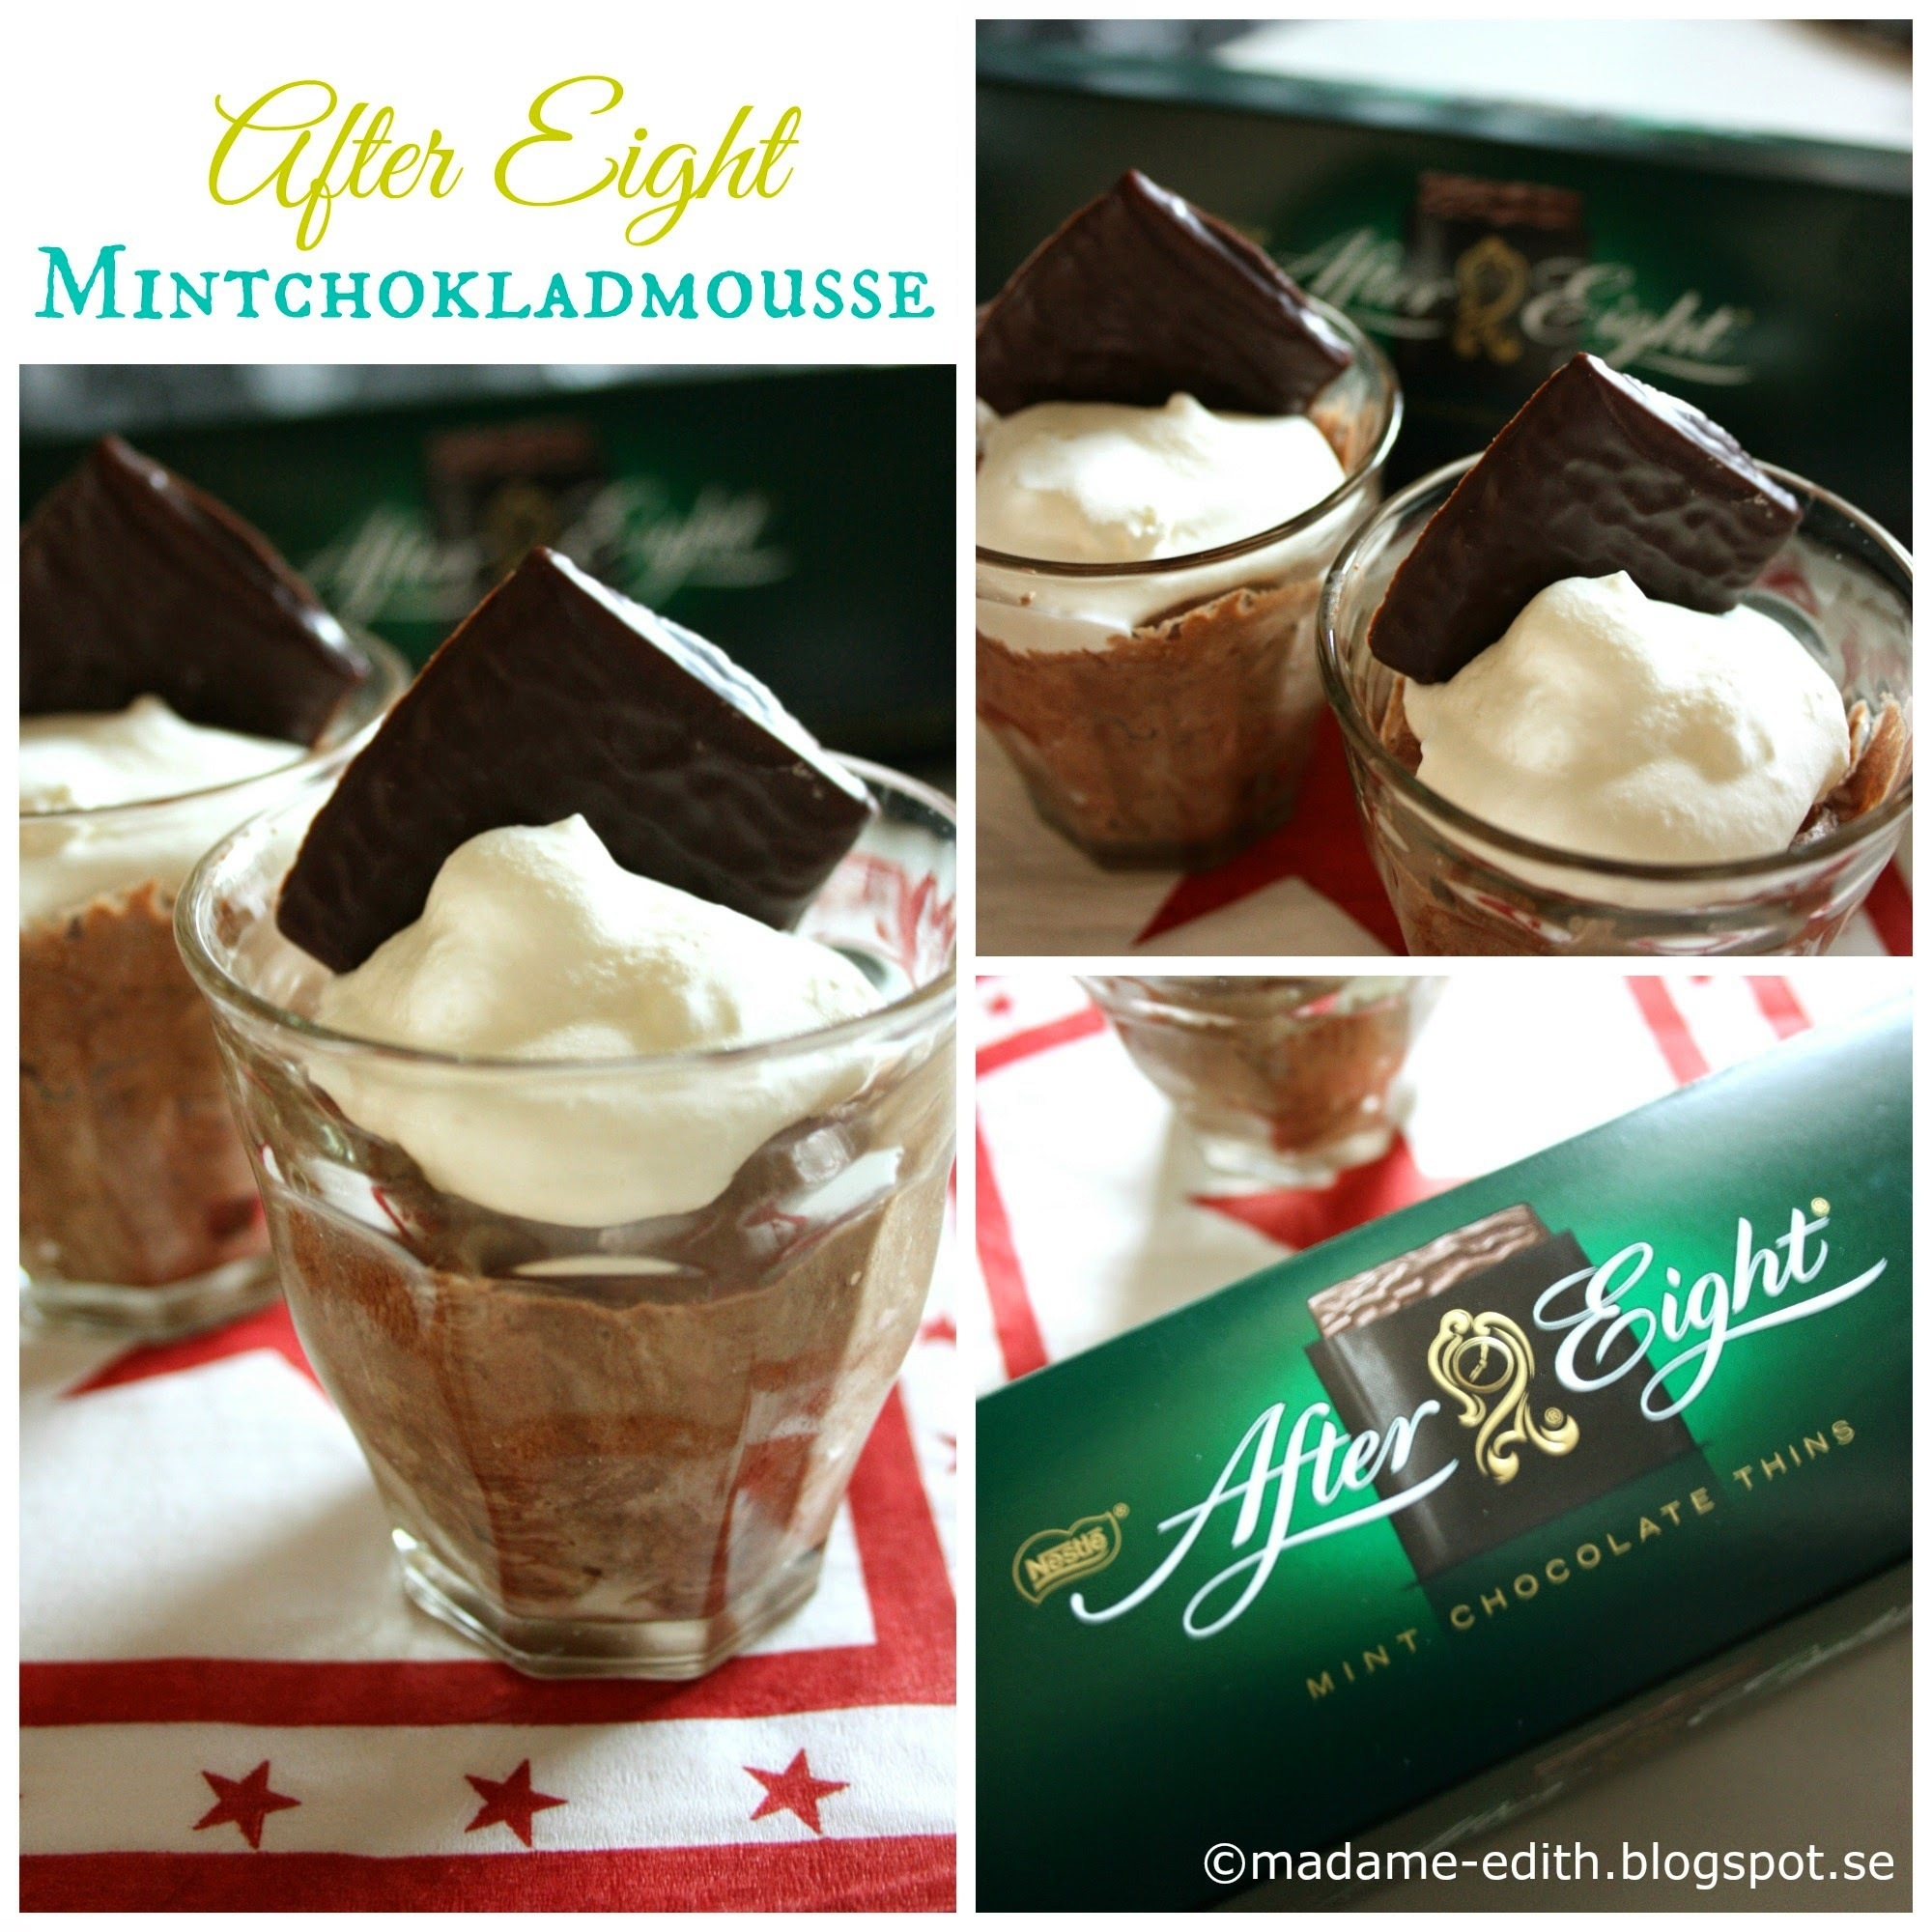 After Eight - Mintchokladmousse